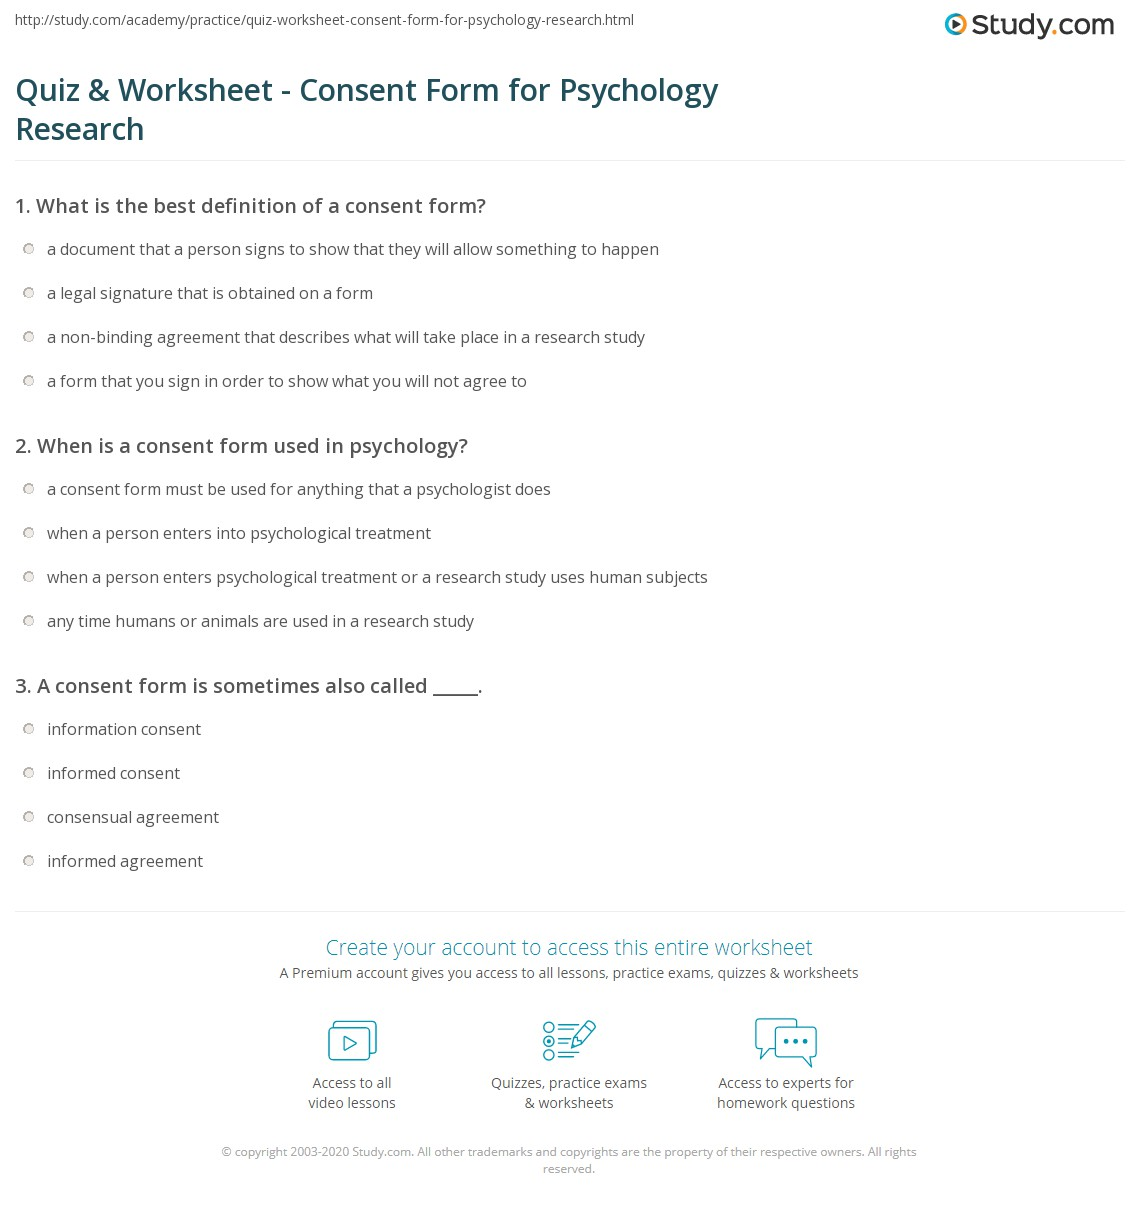 Agreement Form Examples | Quiz Worksheet Consent Form For Psychology Research Study Com